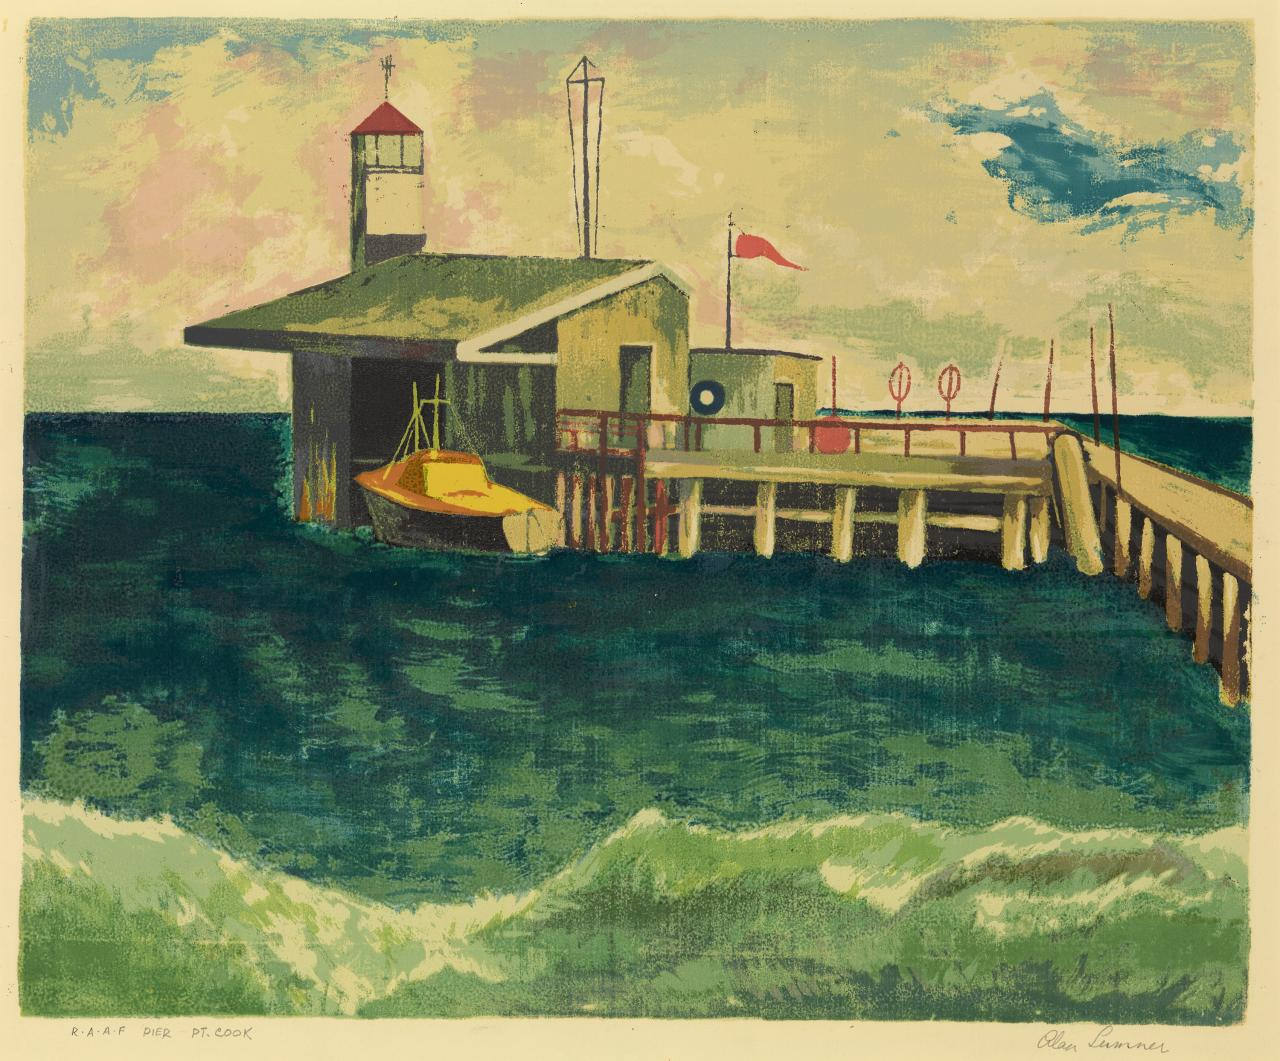 R.A.A.F. pier, Point Cook